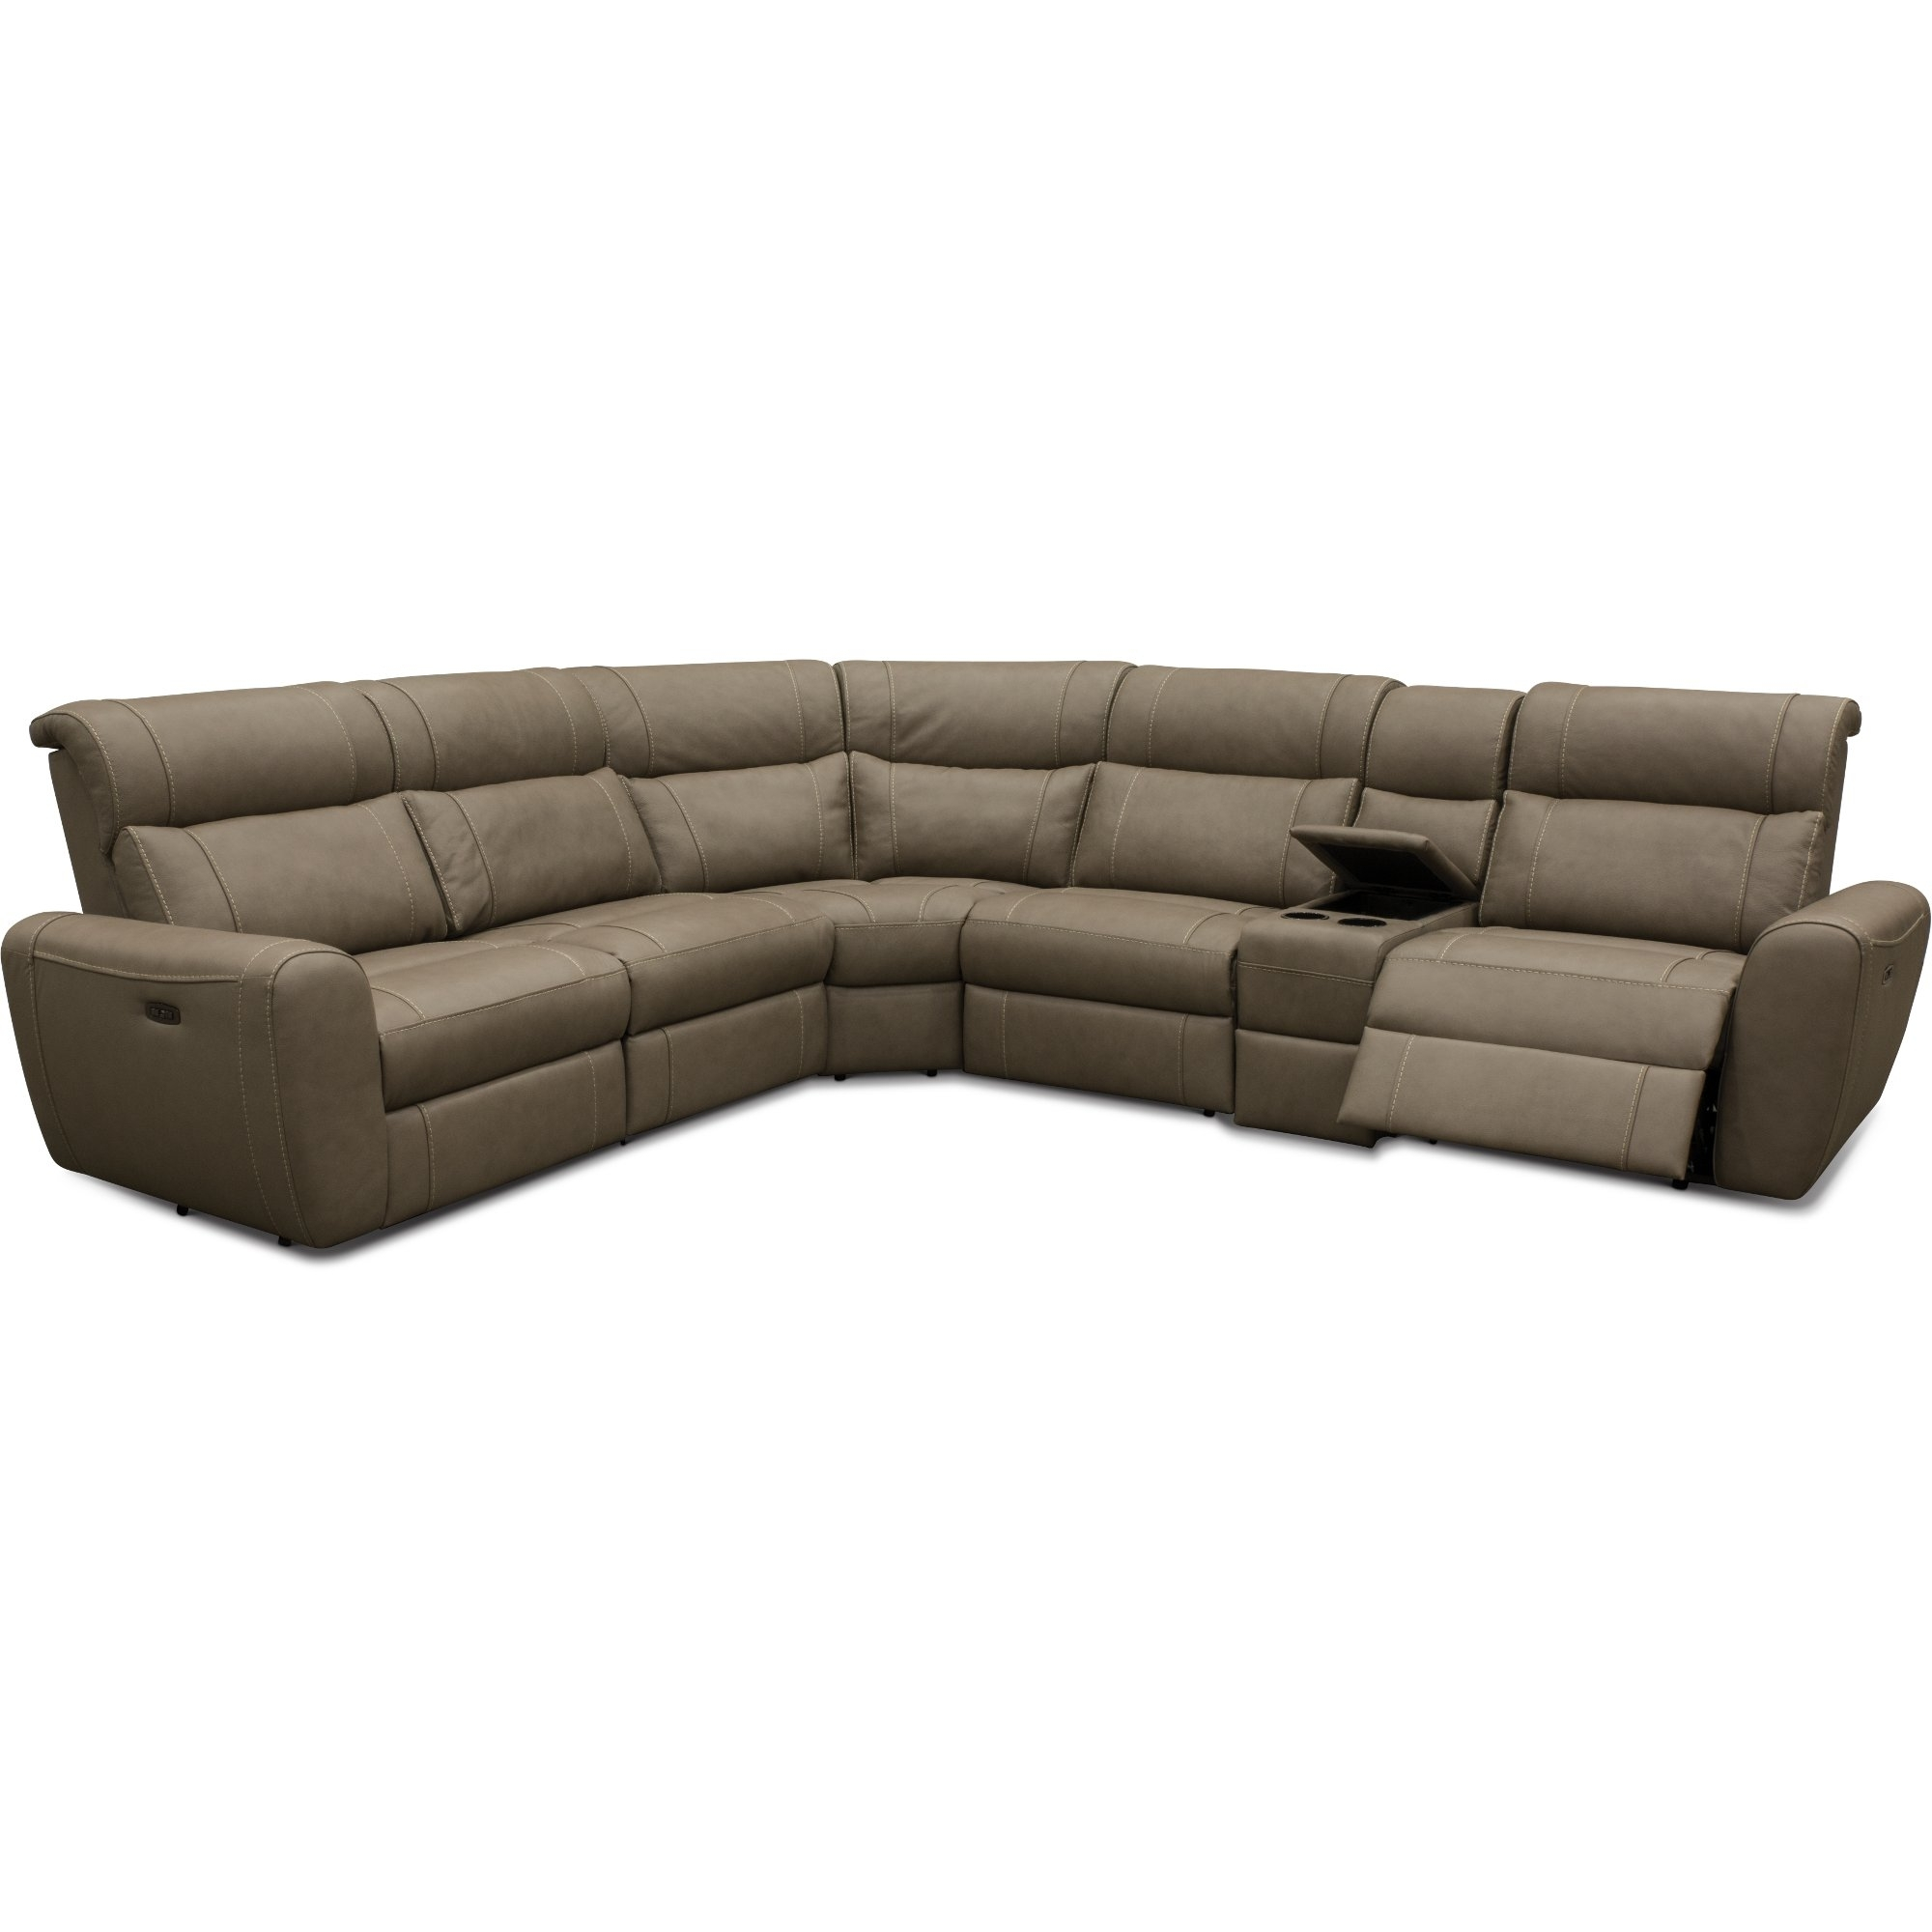 Taupe Leather-Match 6 Piece Power Sectional Sofa - Robert | Rc intended for Denali Charcoal Grey 6 Piece Reclining Sectionals With 2 Power Headrests (Image 30 of 30)